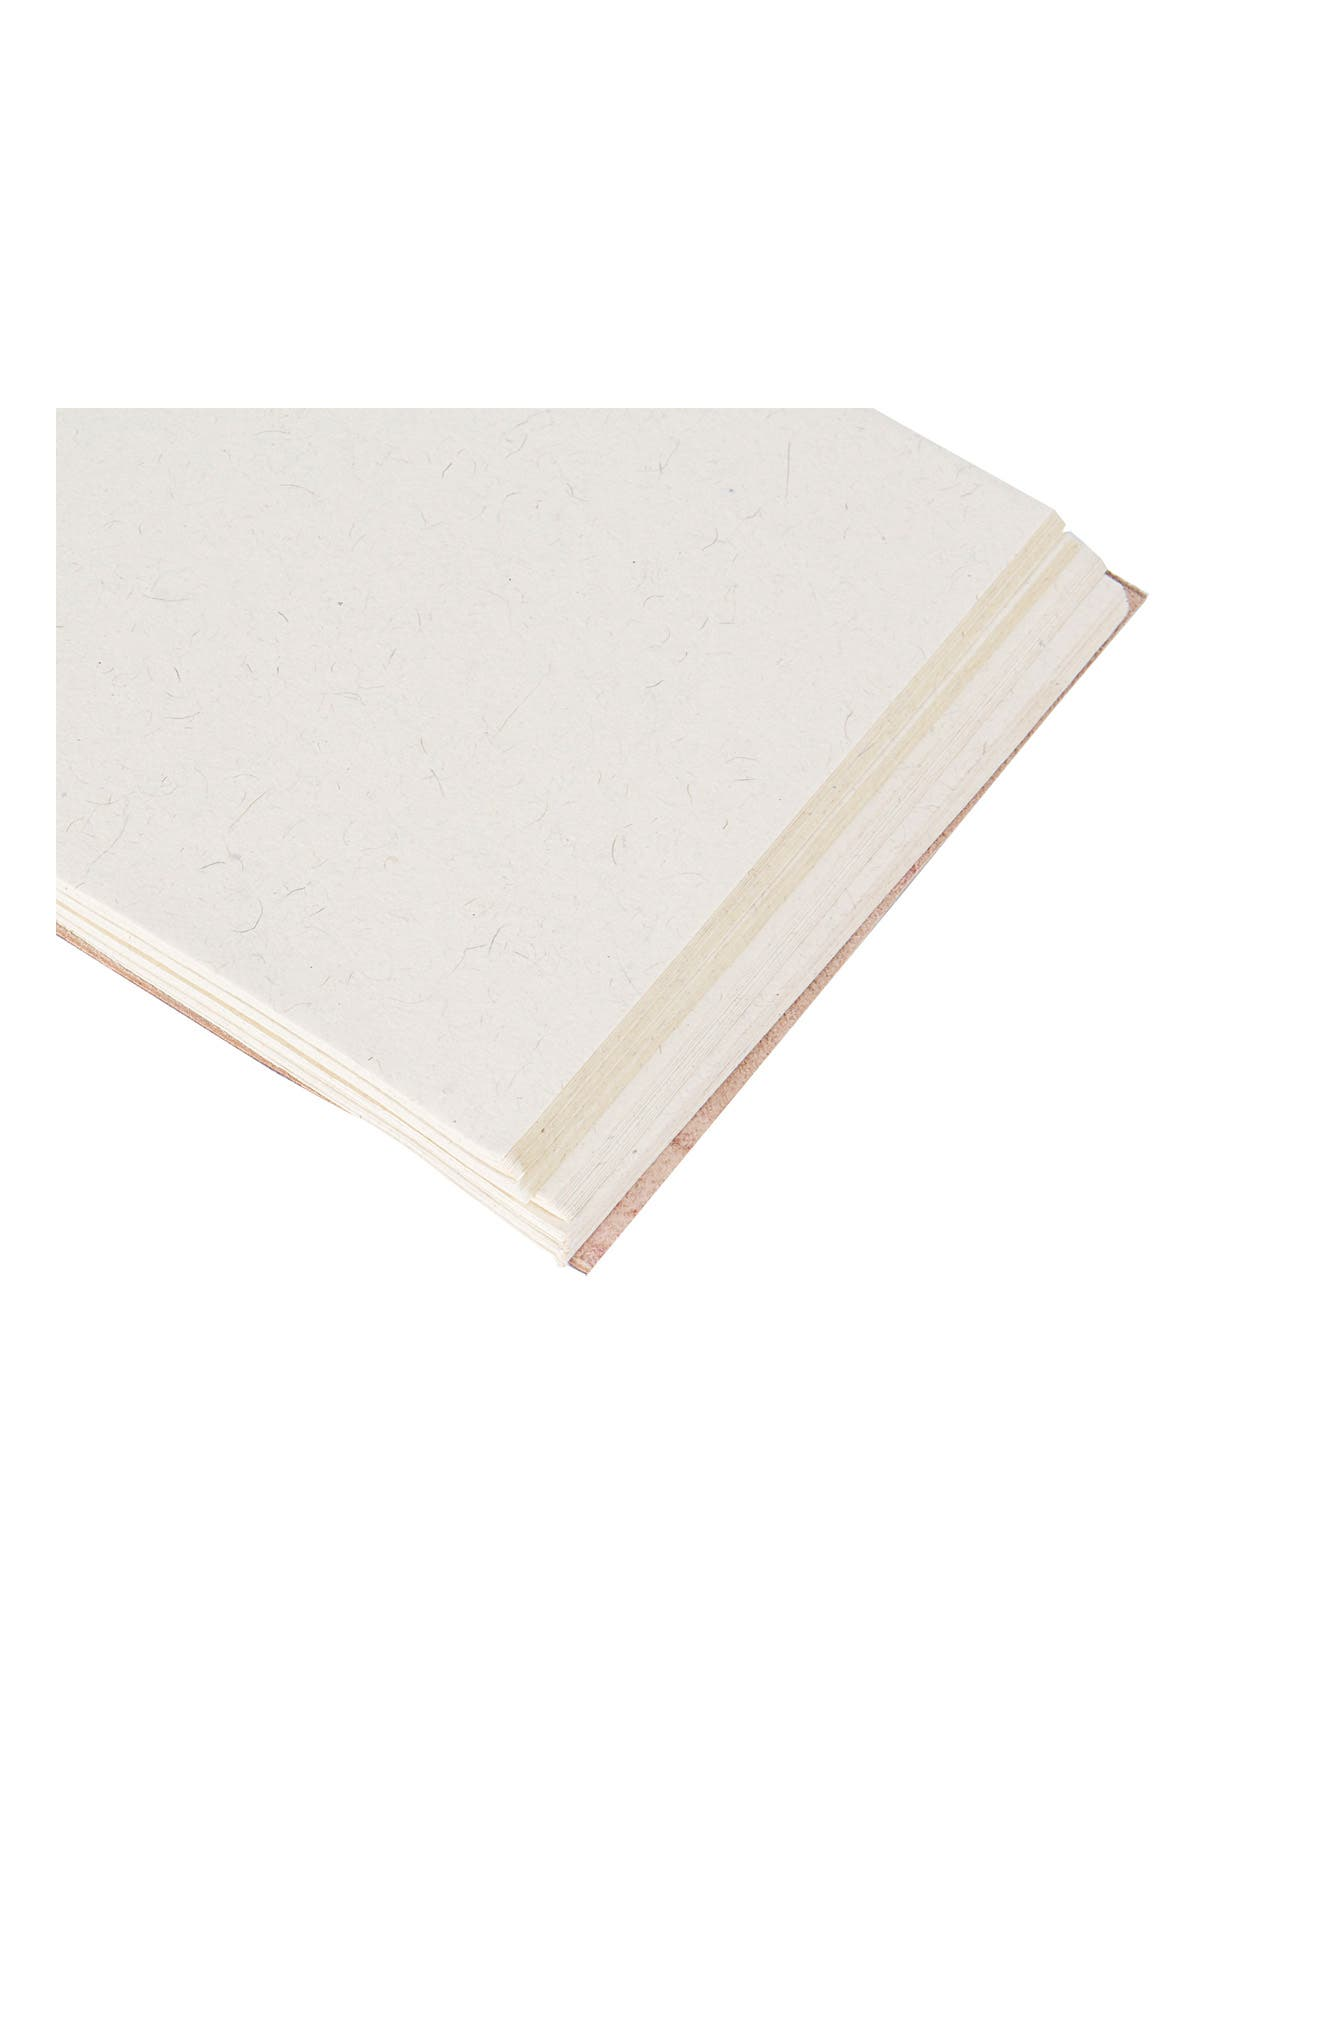 Best Day Ever Leather Guest Book,                             Alternate thumbnail 6, color,                             710